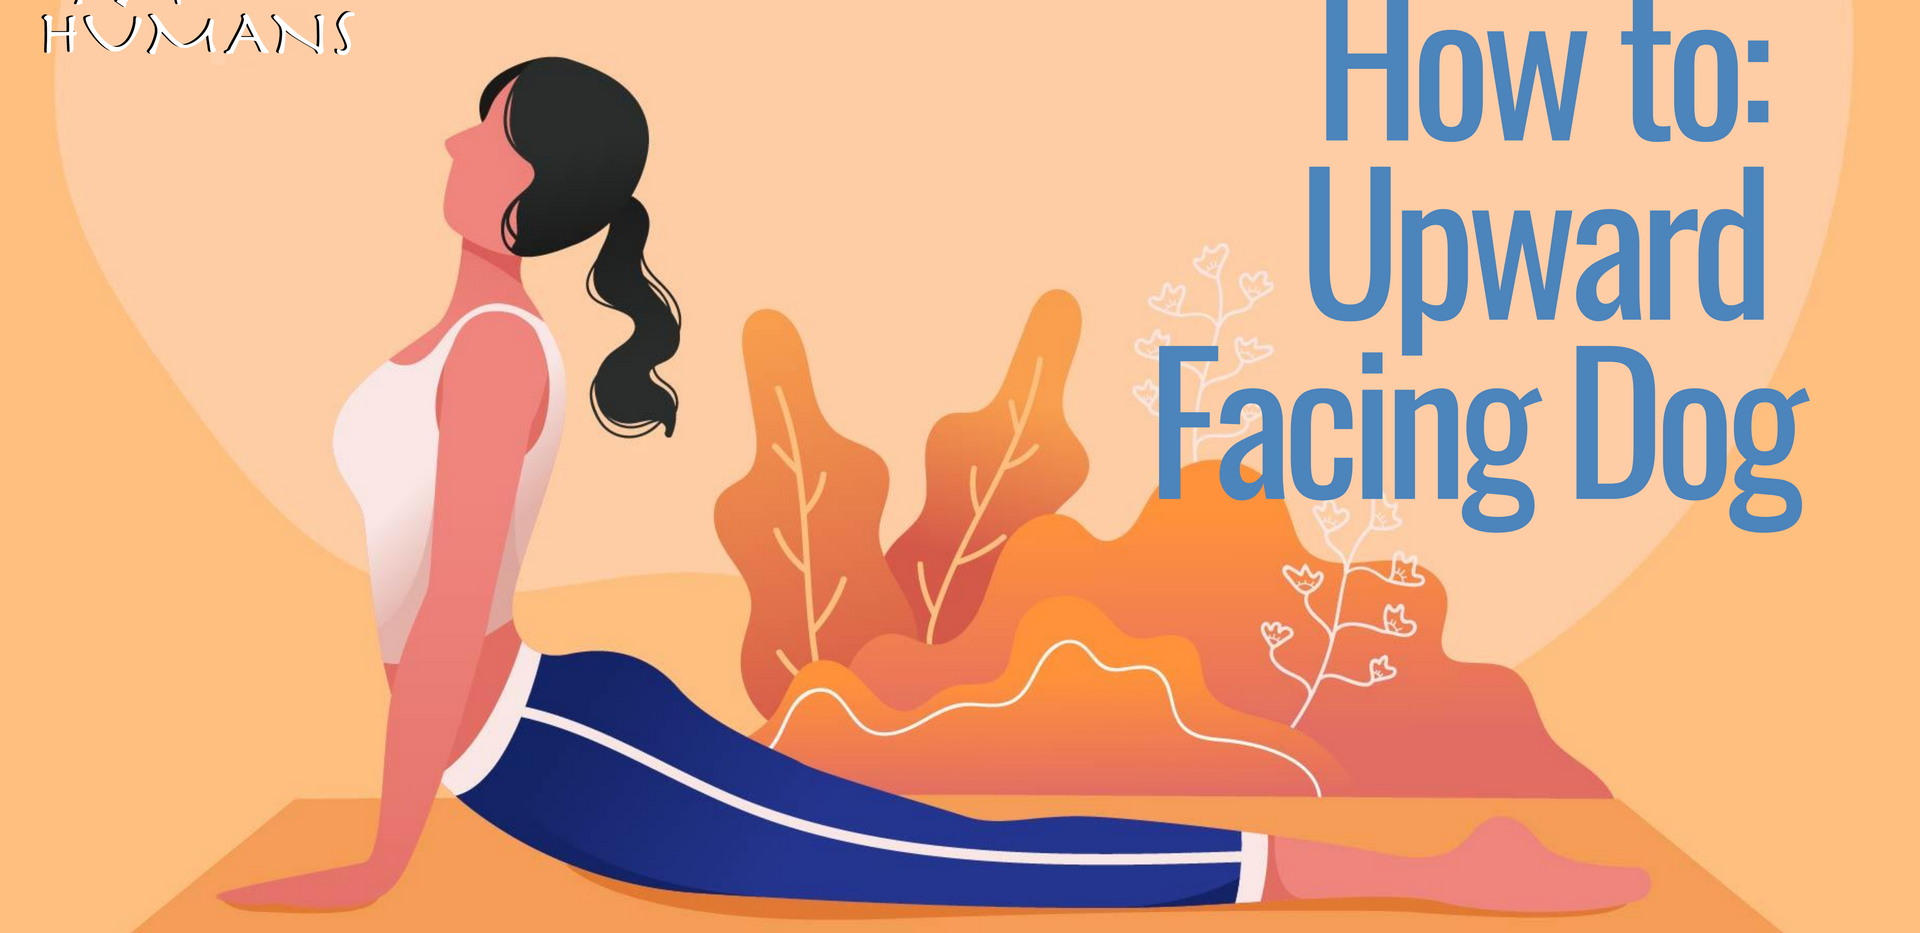 How to: Upward Facing Dog